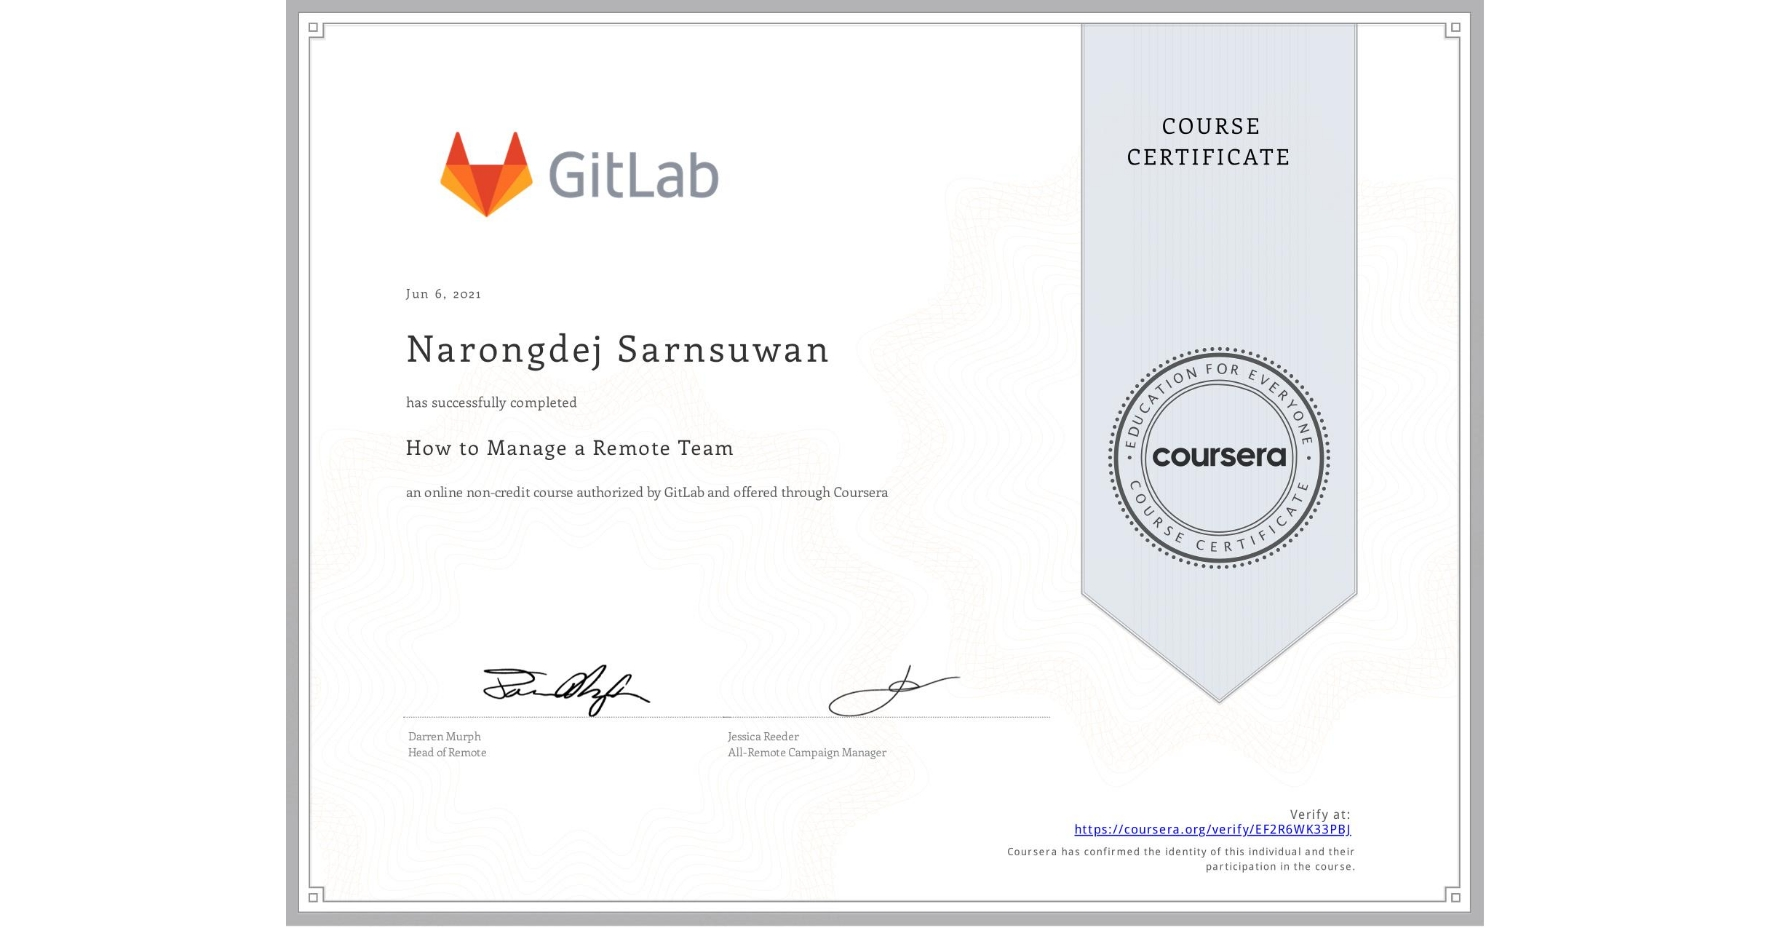 View certificate for Narongdej Sarnsuwan, How to Manage a Remote Team, an online non-credit course authorized by GitLab and offered through Coursera